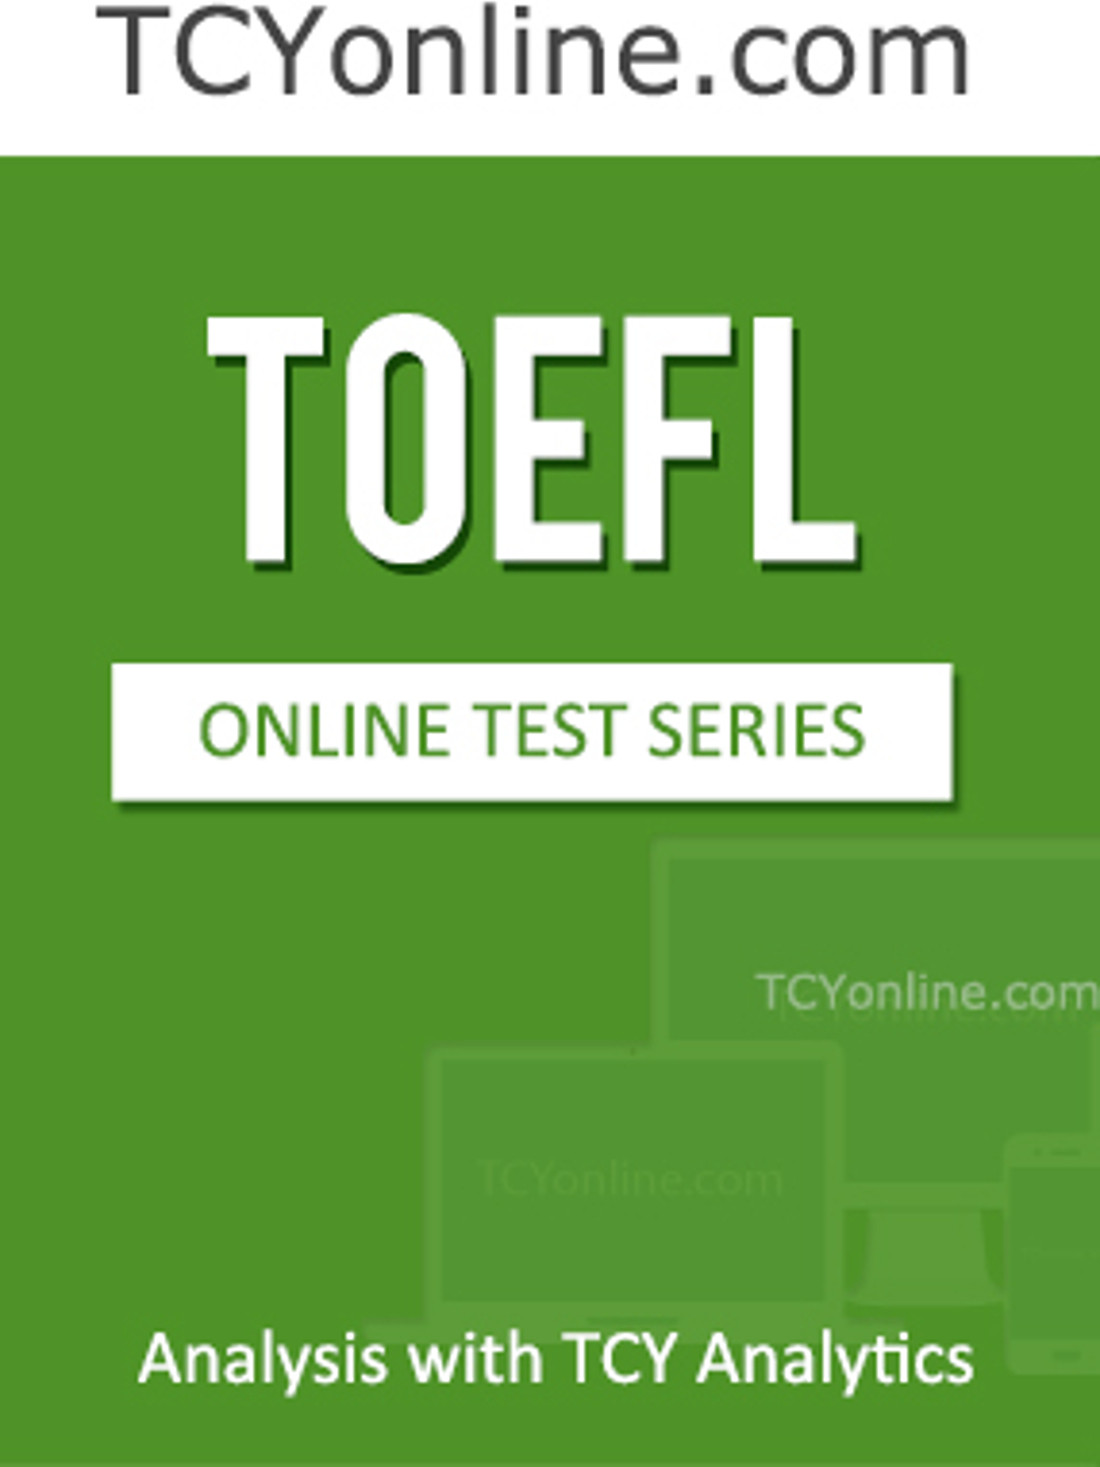 TCYonline TOEFL - Analysis with TCY Analytics (10 Months Pack) Online Test(Voucher)